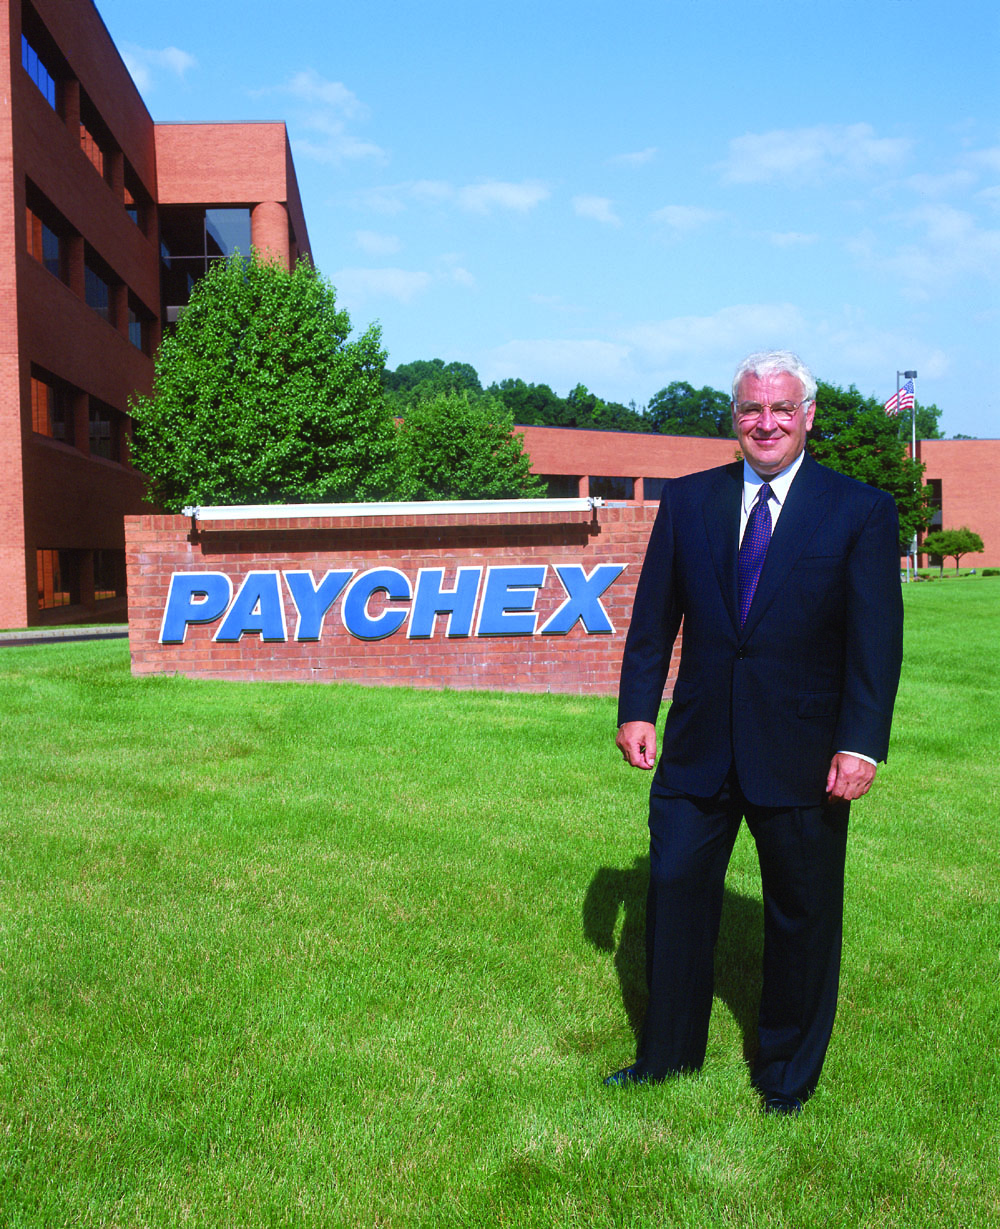 TomGolisano in Front of Paychex Headquarters